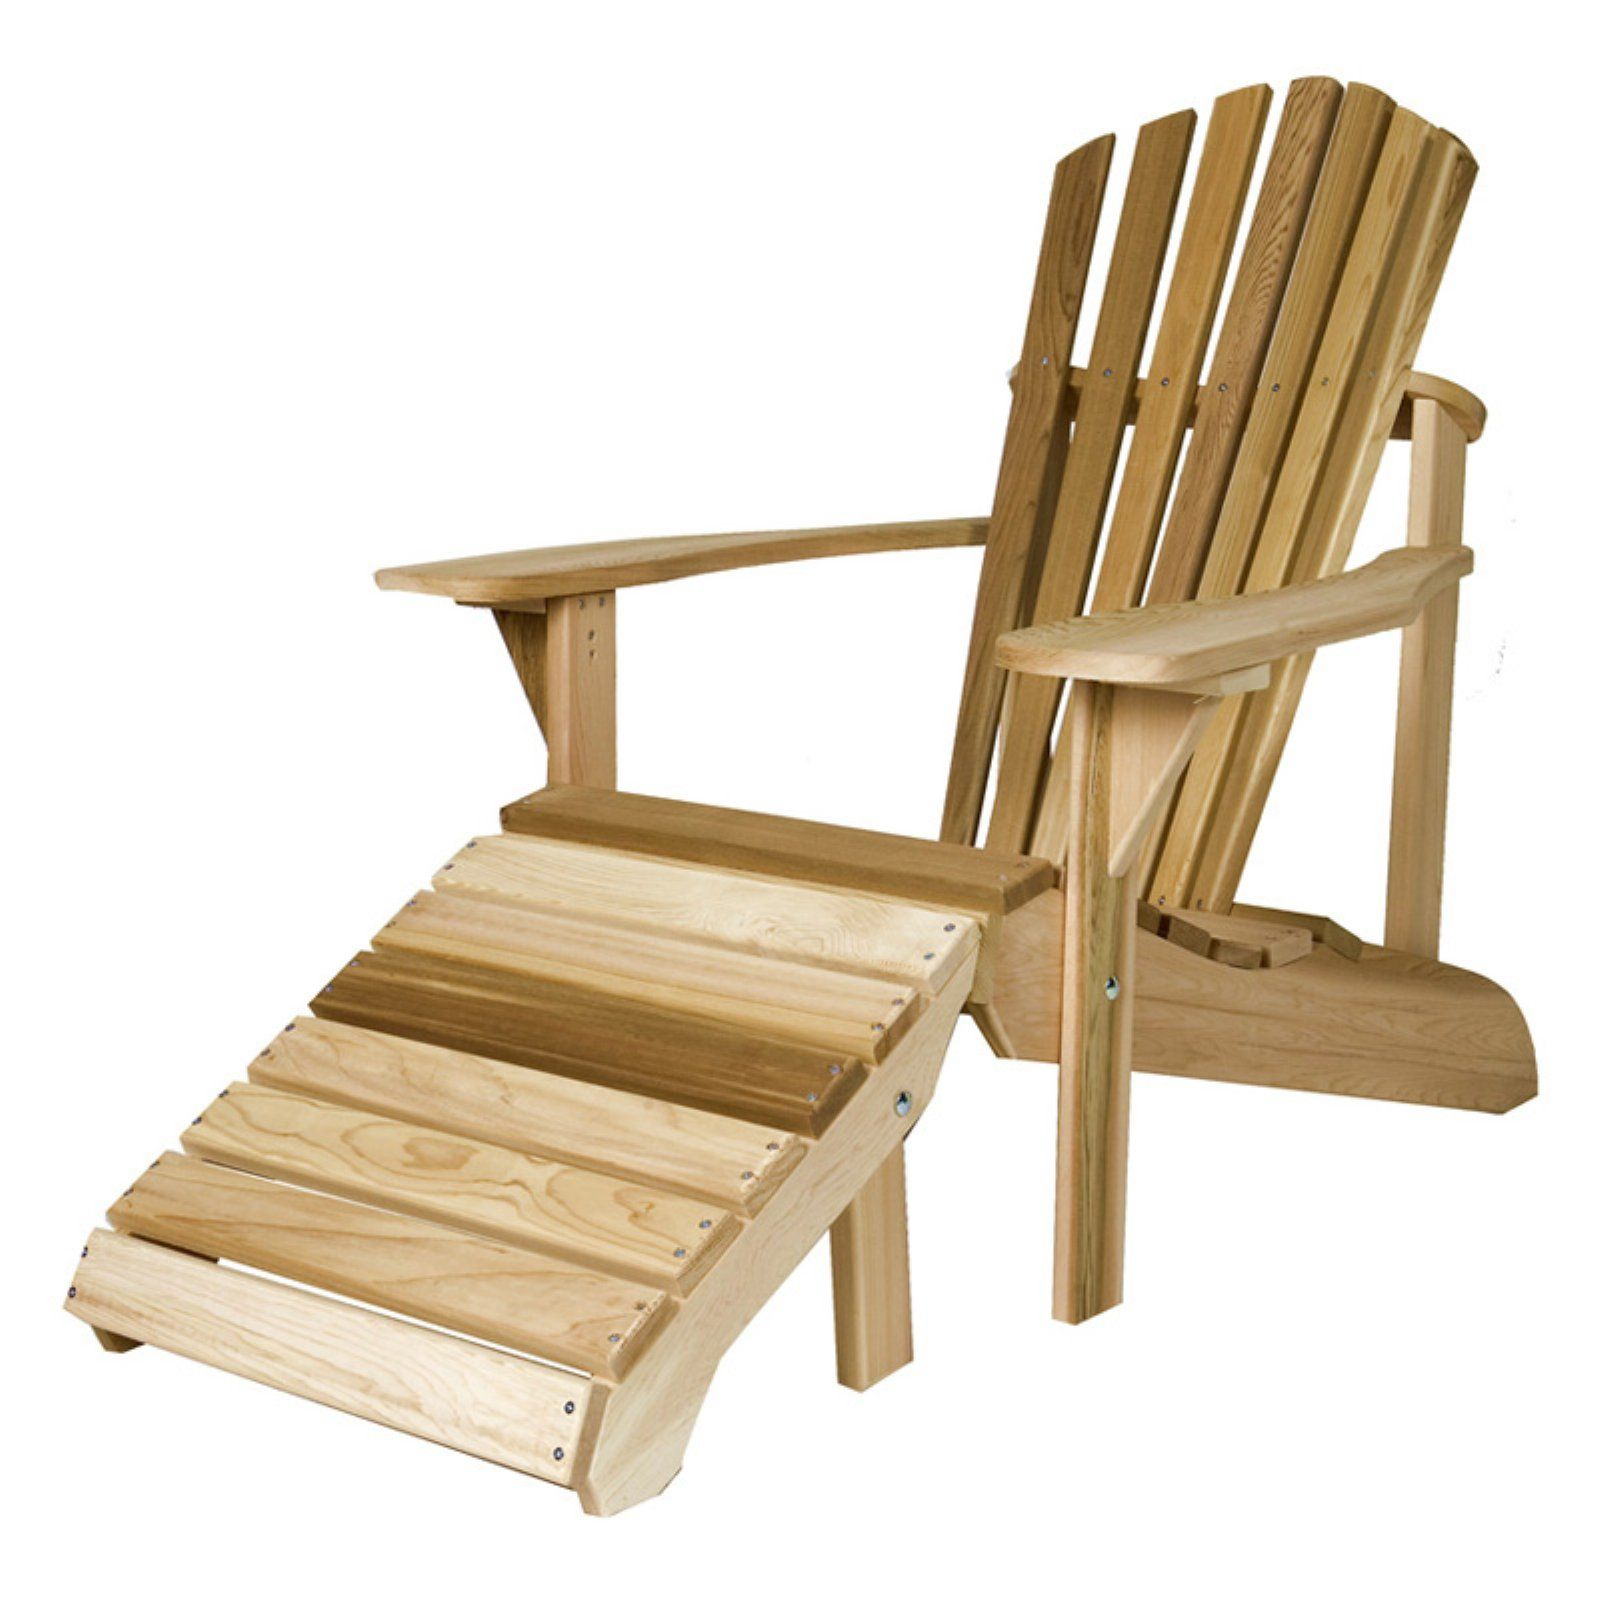 Hn Outdoor Muirfield Adirondack Chair With Ottoman In 2021 Wood Adirondack Chairs Teak Adirondack Chairs Resin Adirondack Chairs Plastic adirondack chairs with ottoman